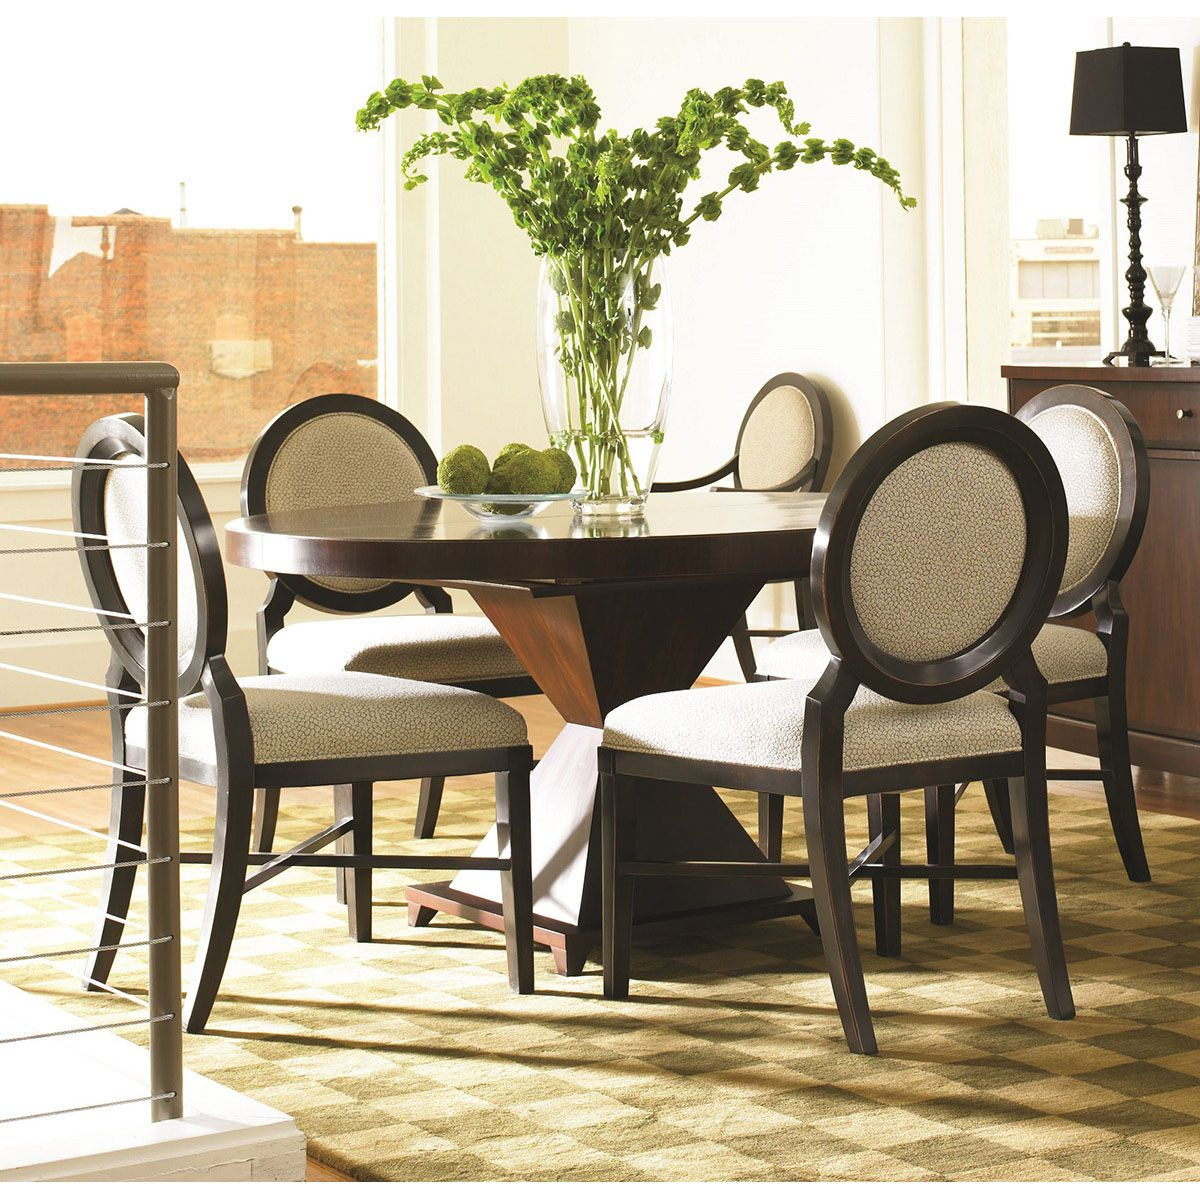 Hickory White Round Dining Table 47010  Hickory White Amazing Cheap Dining Room Table And Chair Sets Design Inspiration